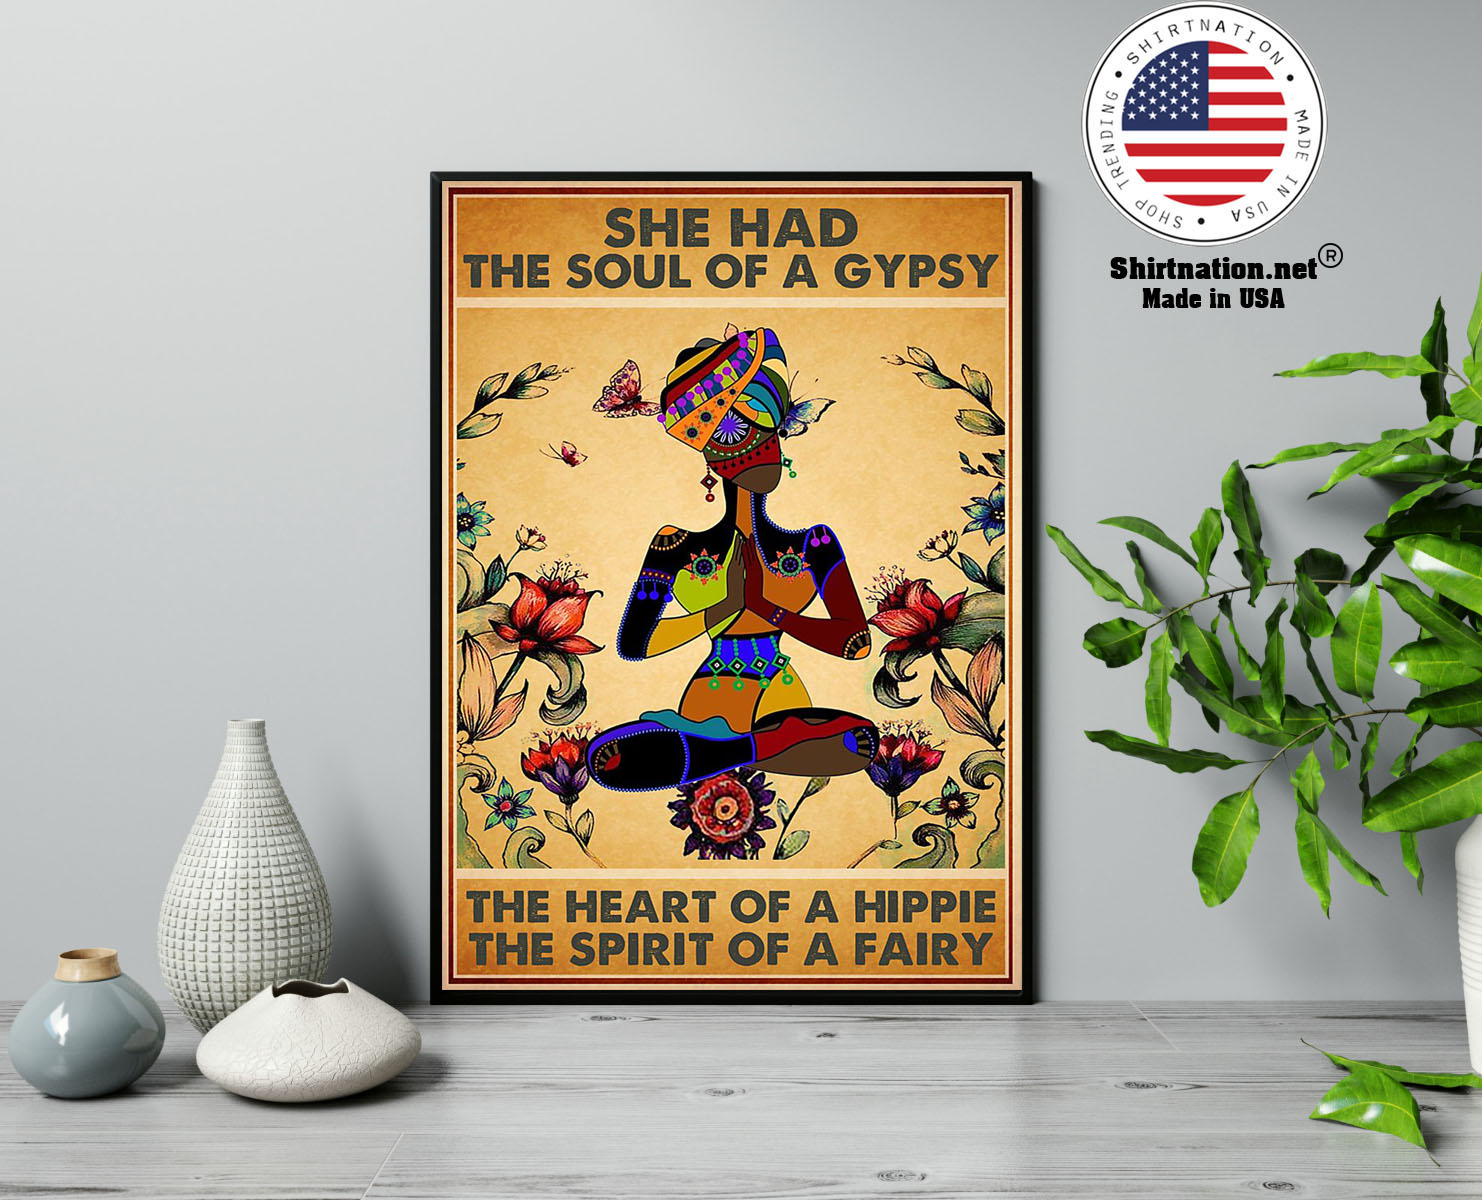 She has the soul of a gypsy the heart of a hippie and the spirit of a fairy poster 13